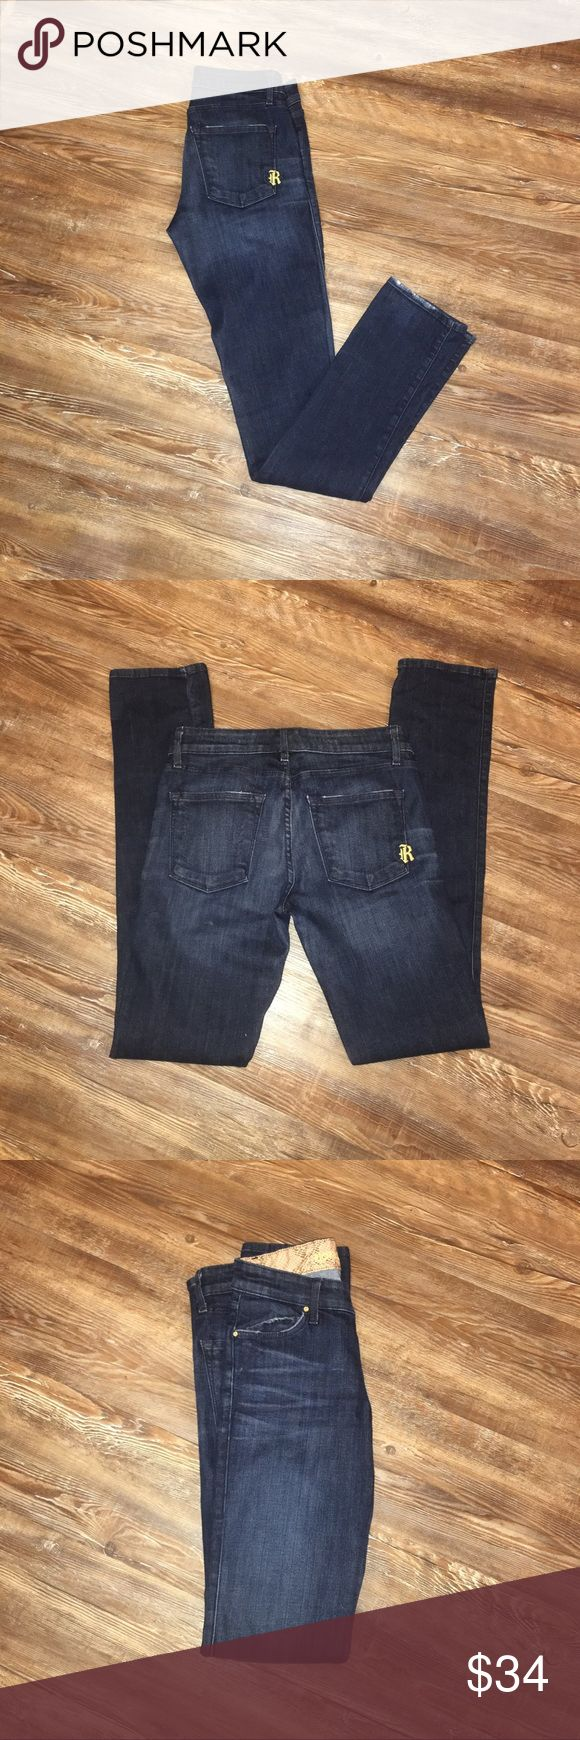 Women's 27 Dark wash Rich & Skinny Jeans✨ These are a must have!! So cute and they go with everything!! Dark wash. Rich & Skinny. Size 27. In good condition!! ***Little worn on the bottom of one leg!!  (P78) 👖😍✨🔥 Rich & Skinny Jeans